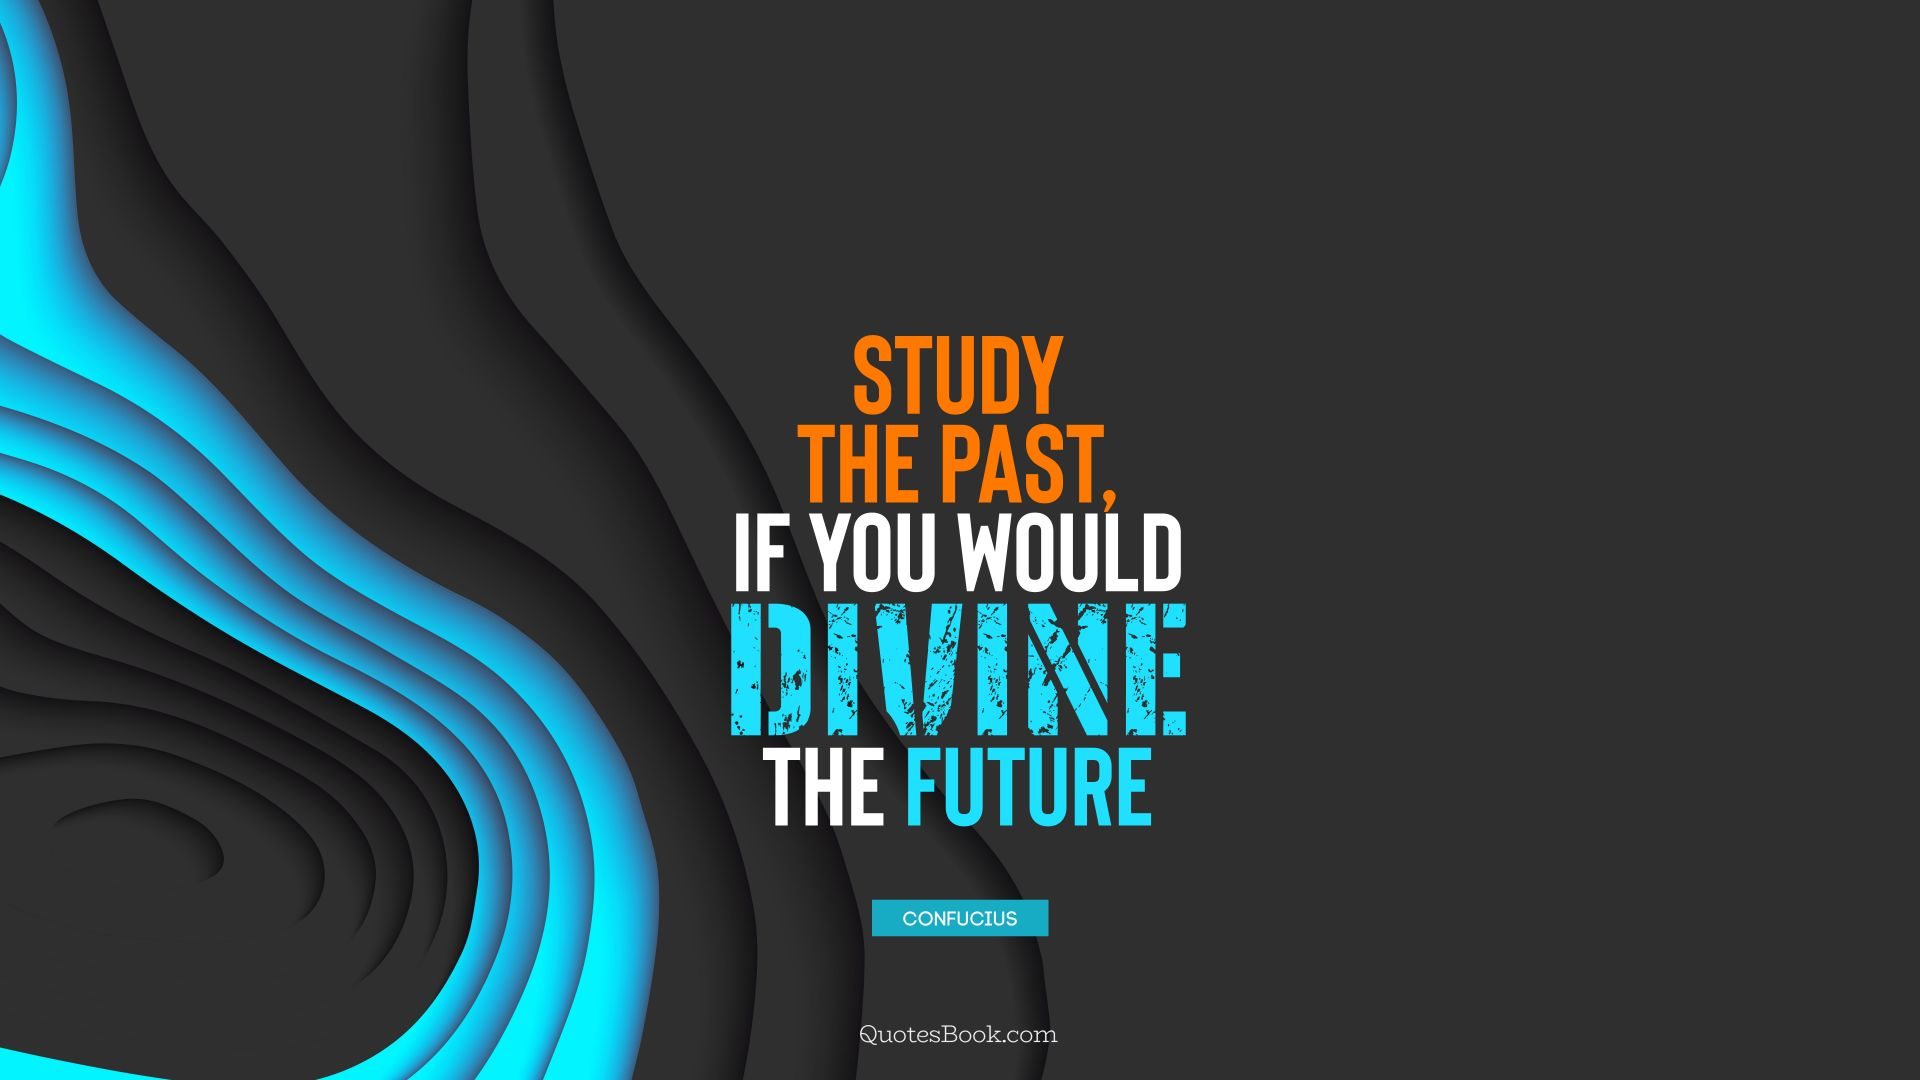 Study the past, if you would divine the future. - Quote by Confucius